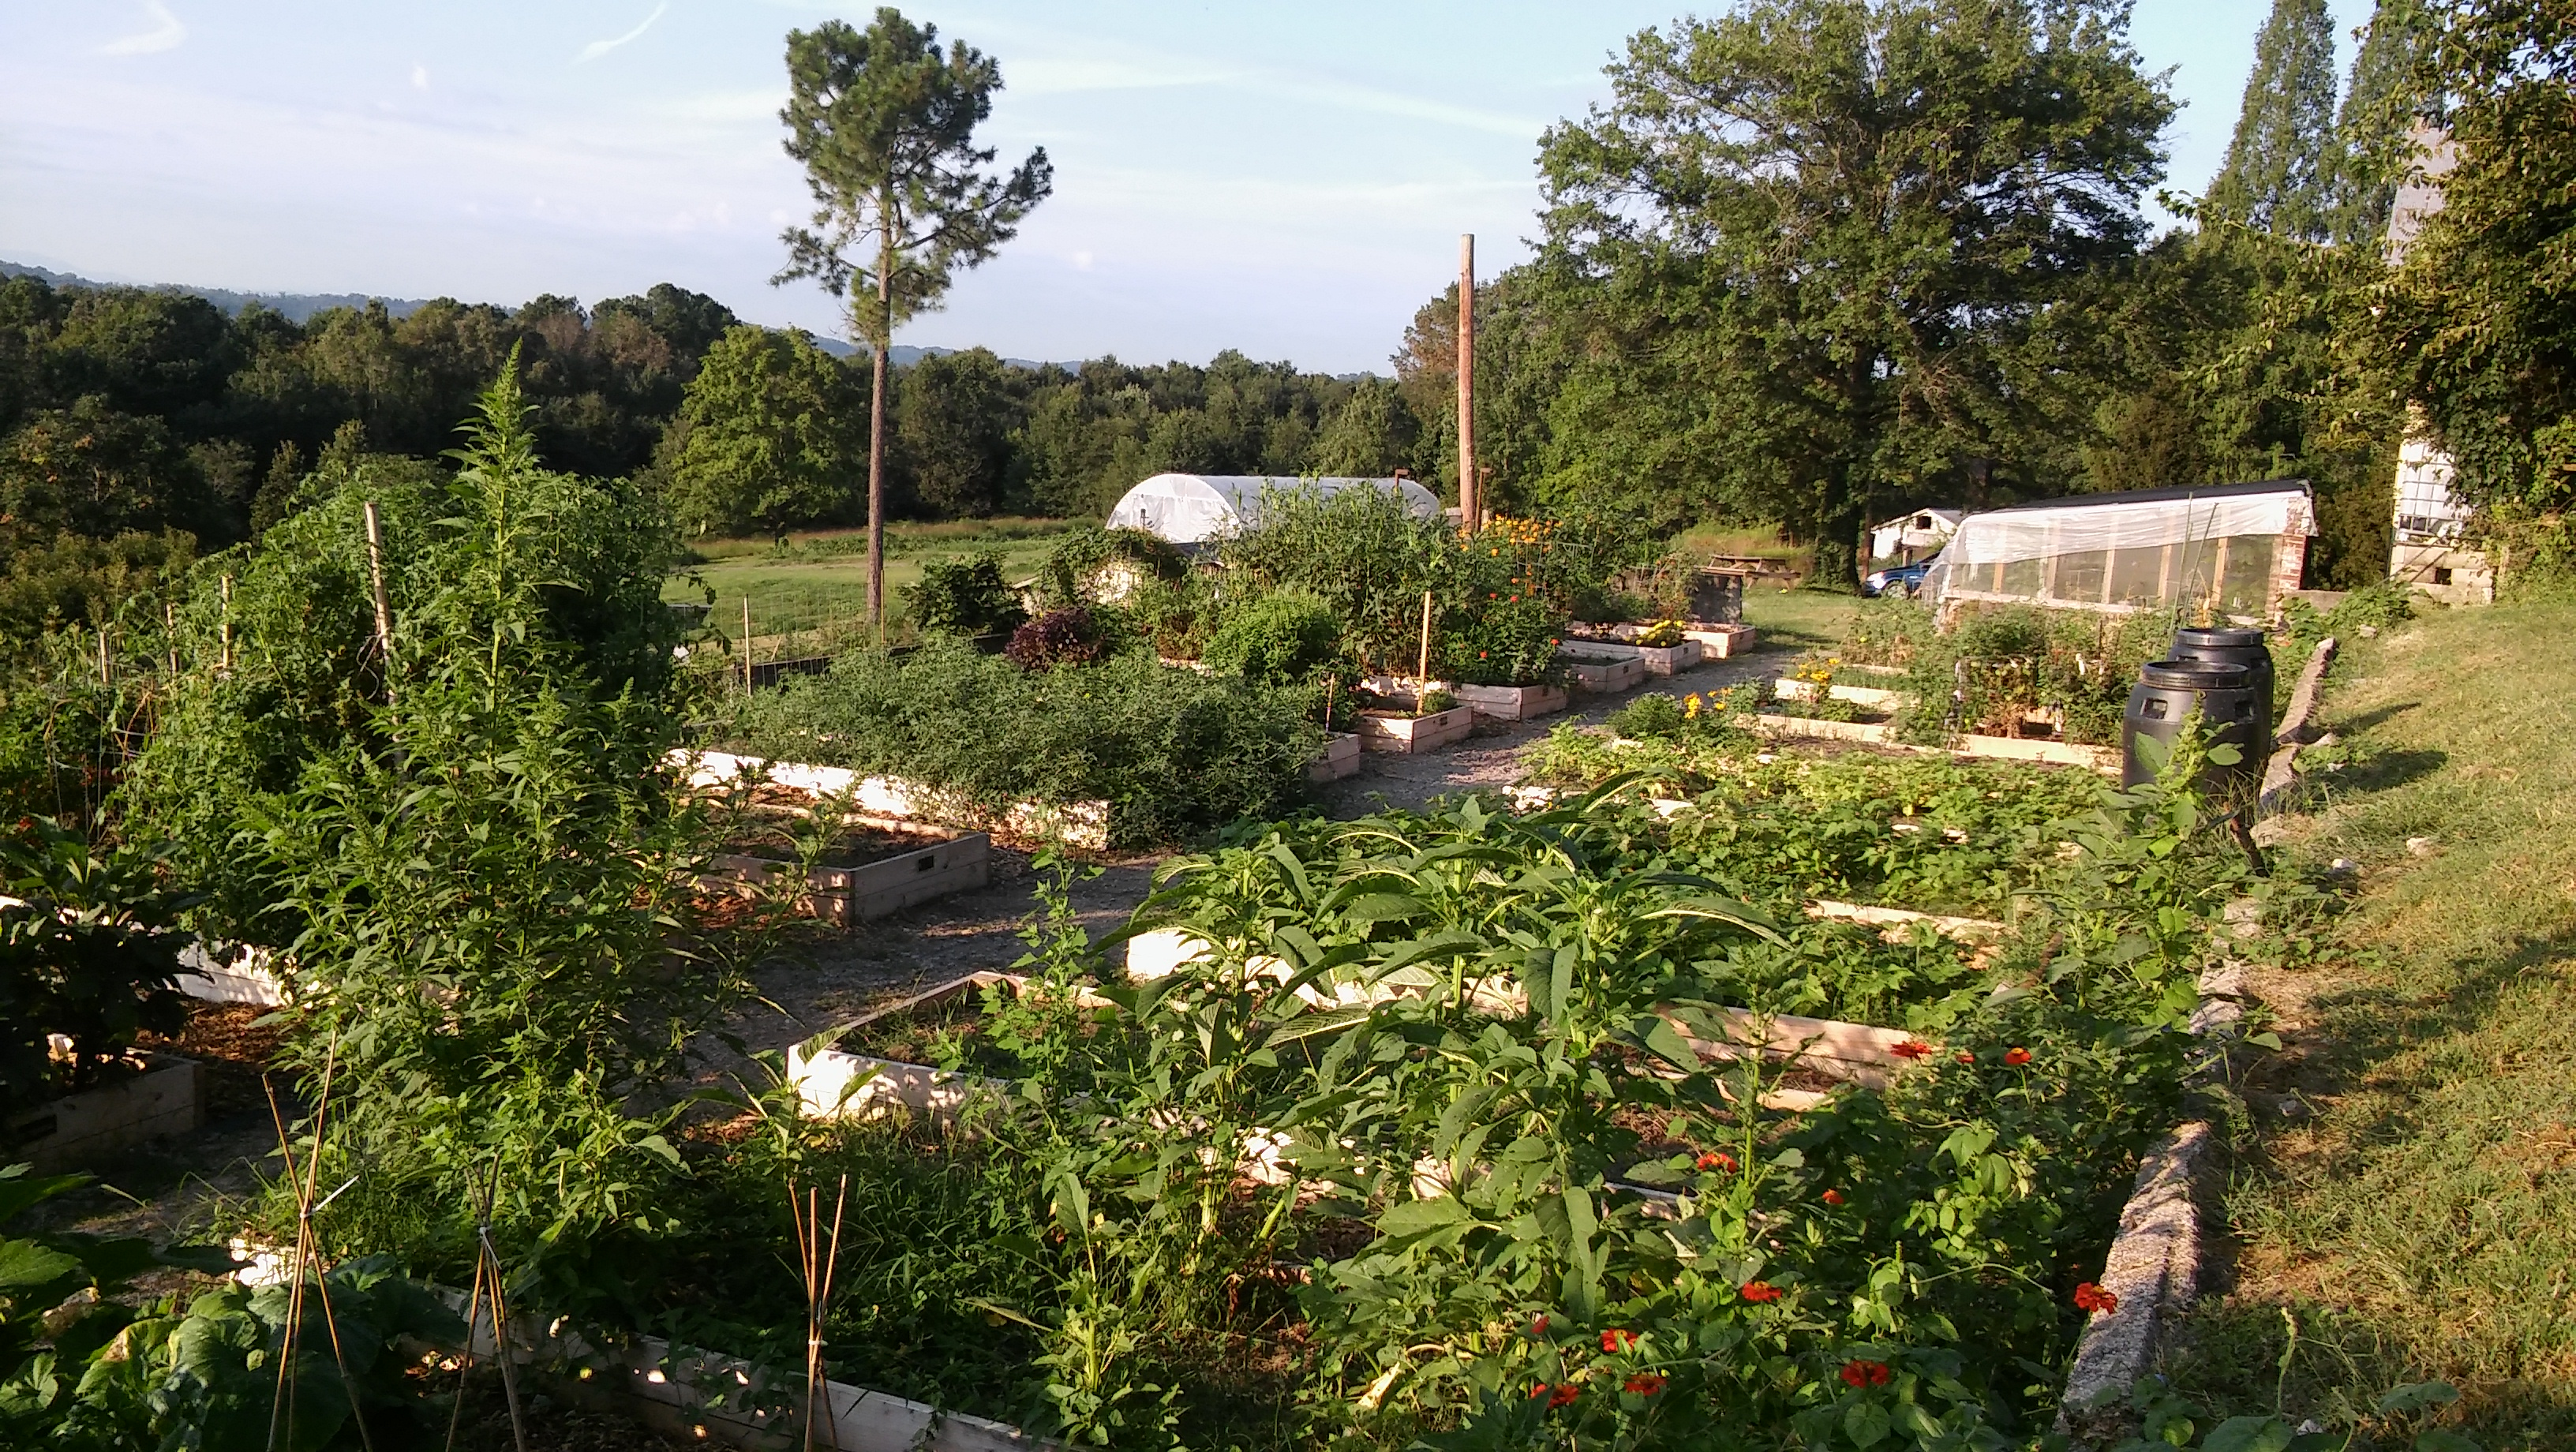 Our Easy Access Family Garden Accommodates Those Who Want To Grow Food For  Themselves And Their Families But May Not Have The Ability To Garden At Home .